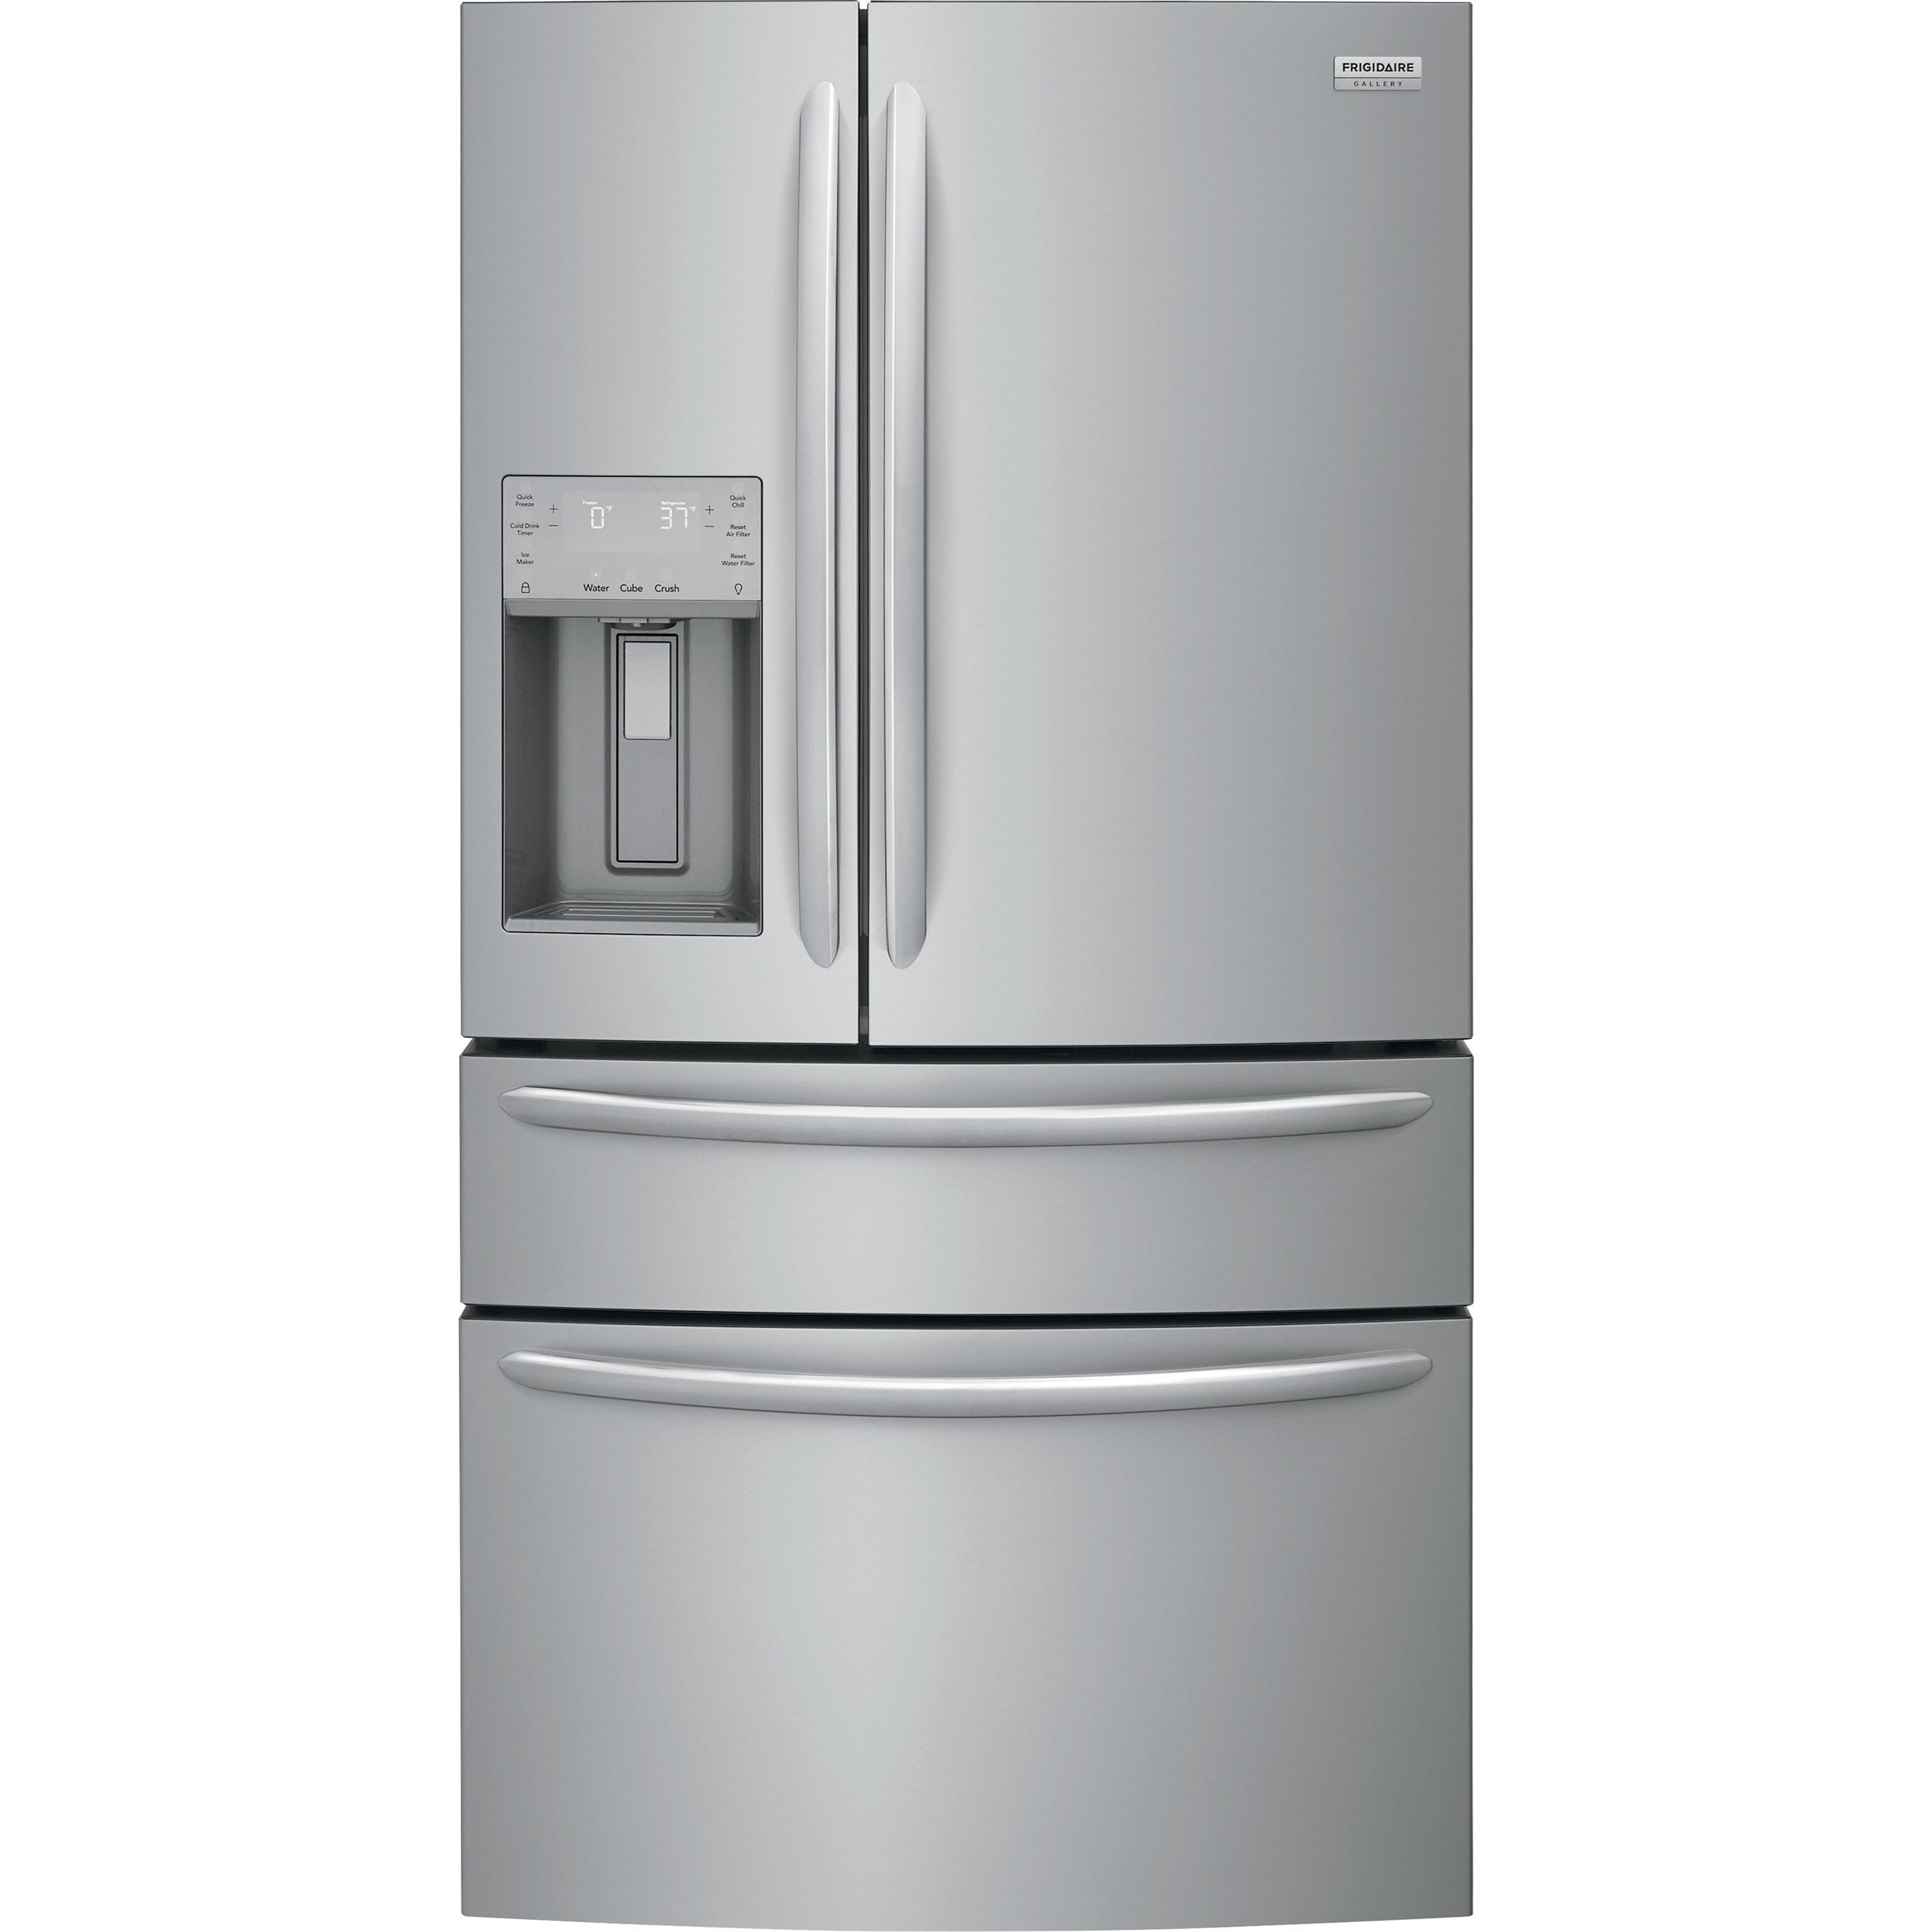 21.8 Cu. Ft. 4-Door French Door Refrigerator